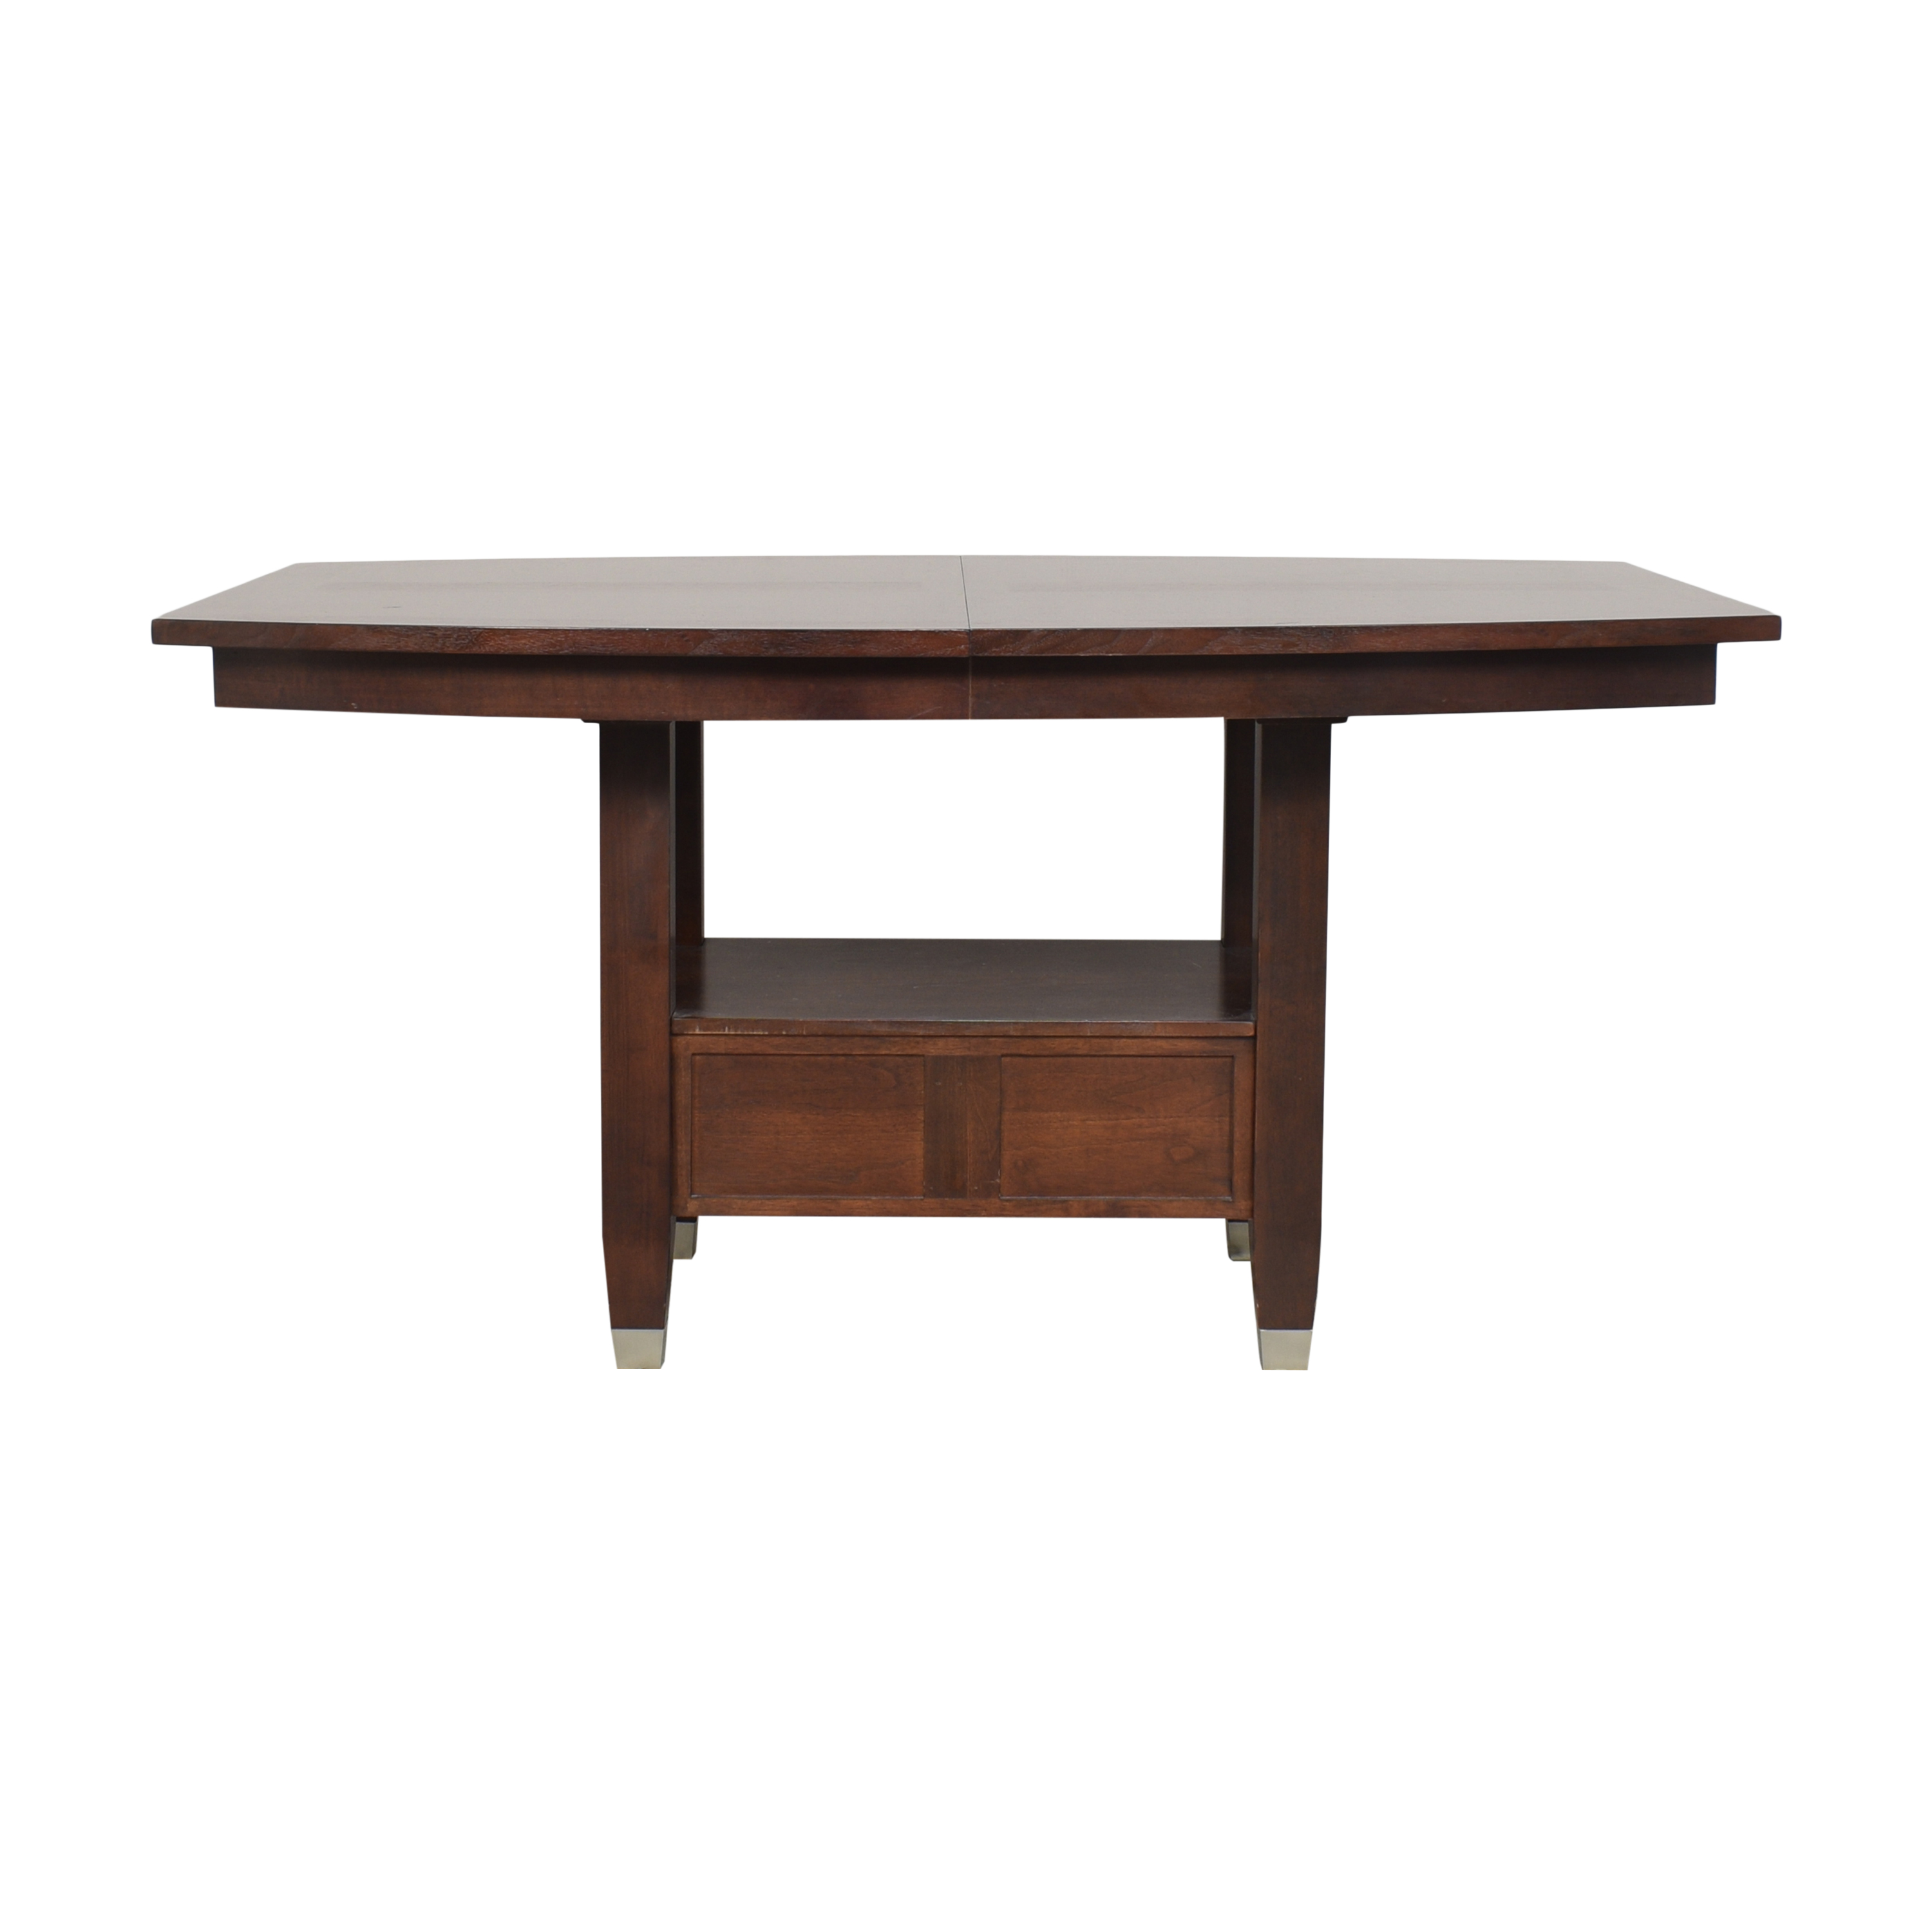 Broyhill Furniture Broyhill Furniture Extendable Dining Table on sale